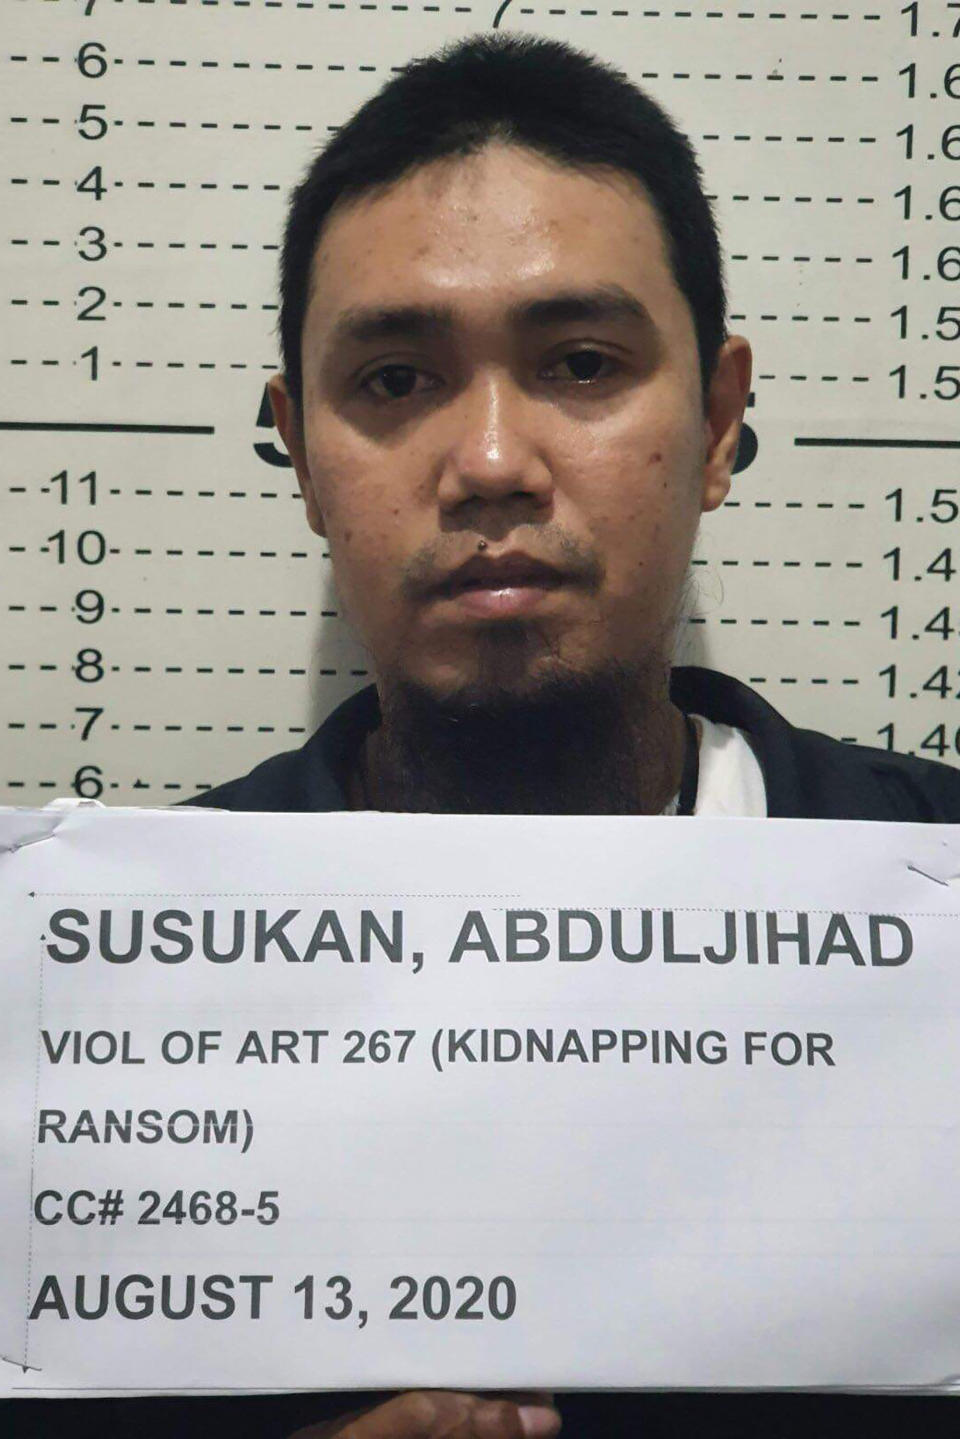 In this photo provided by the Philippine National Police-Public Information Office, Abu Sayyaf commander Anduljihad Susukan poses for a picture at the Davao City Police Station in Davao province, southern Philippines on Thursday Aug. 13, 2020. Susukan, a leading terror suspect who has been linked to beheadings of hostages including two Canadians and a Malaysian, has surrendered after being wounded in battle, officials said Friday. (Philippine National Police PIO via AP)